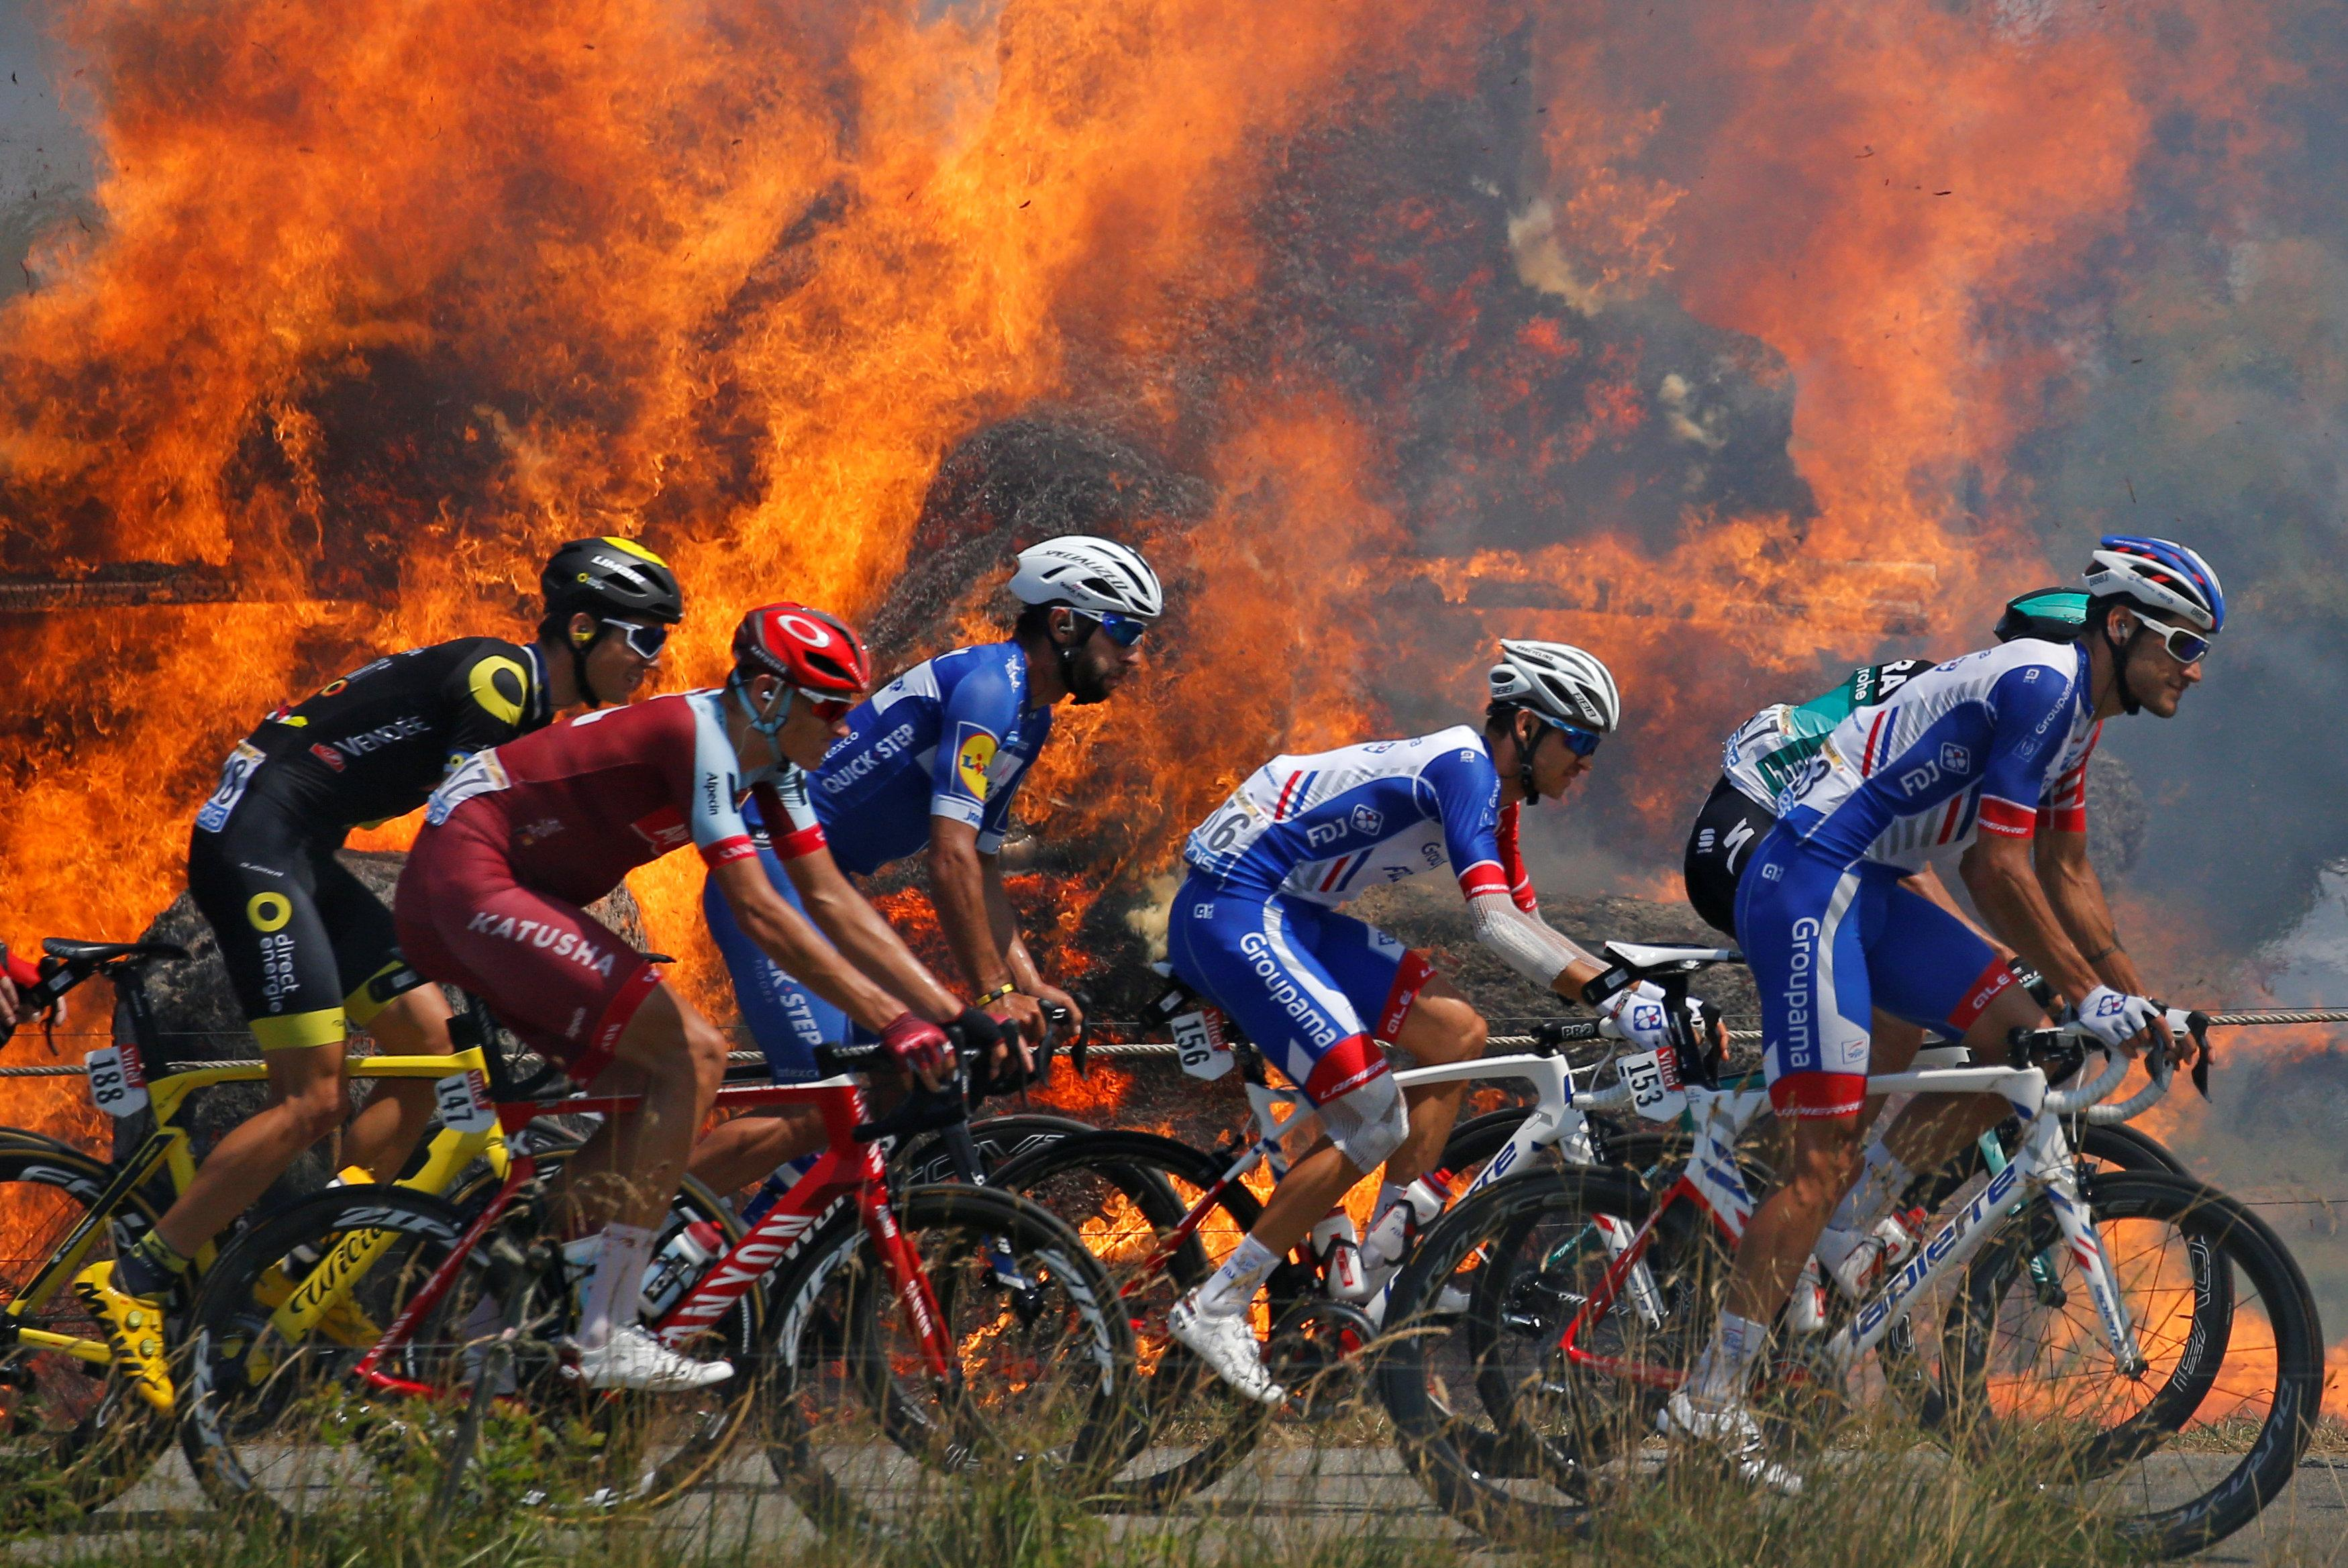 Tour de France riders cruised past a massive fire as bails of hay were set alight in Brittany